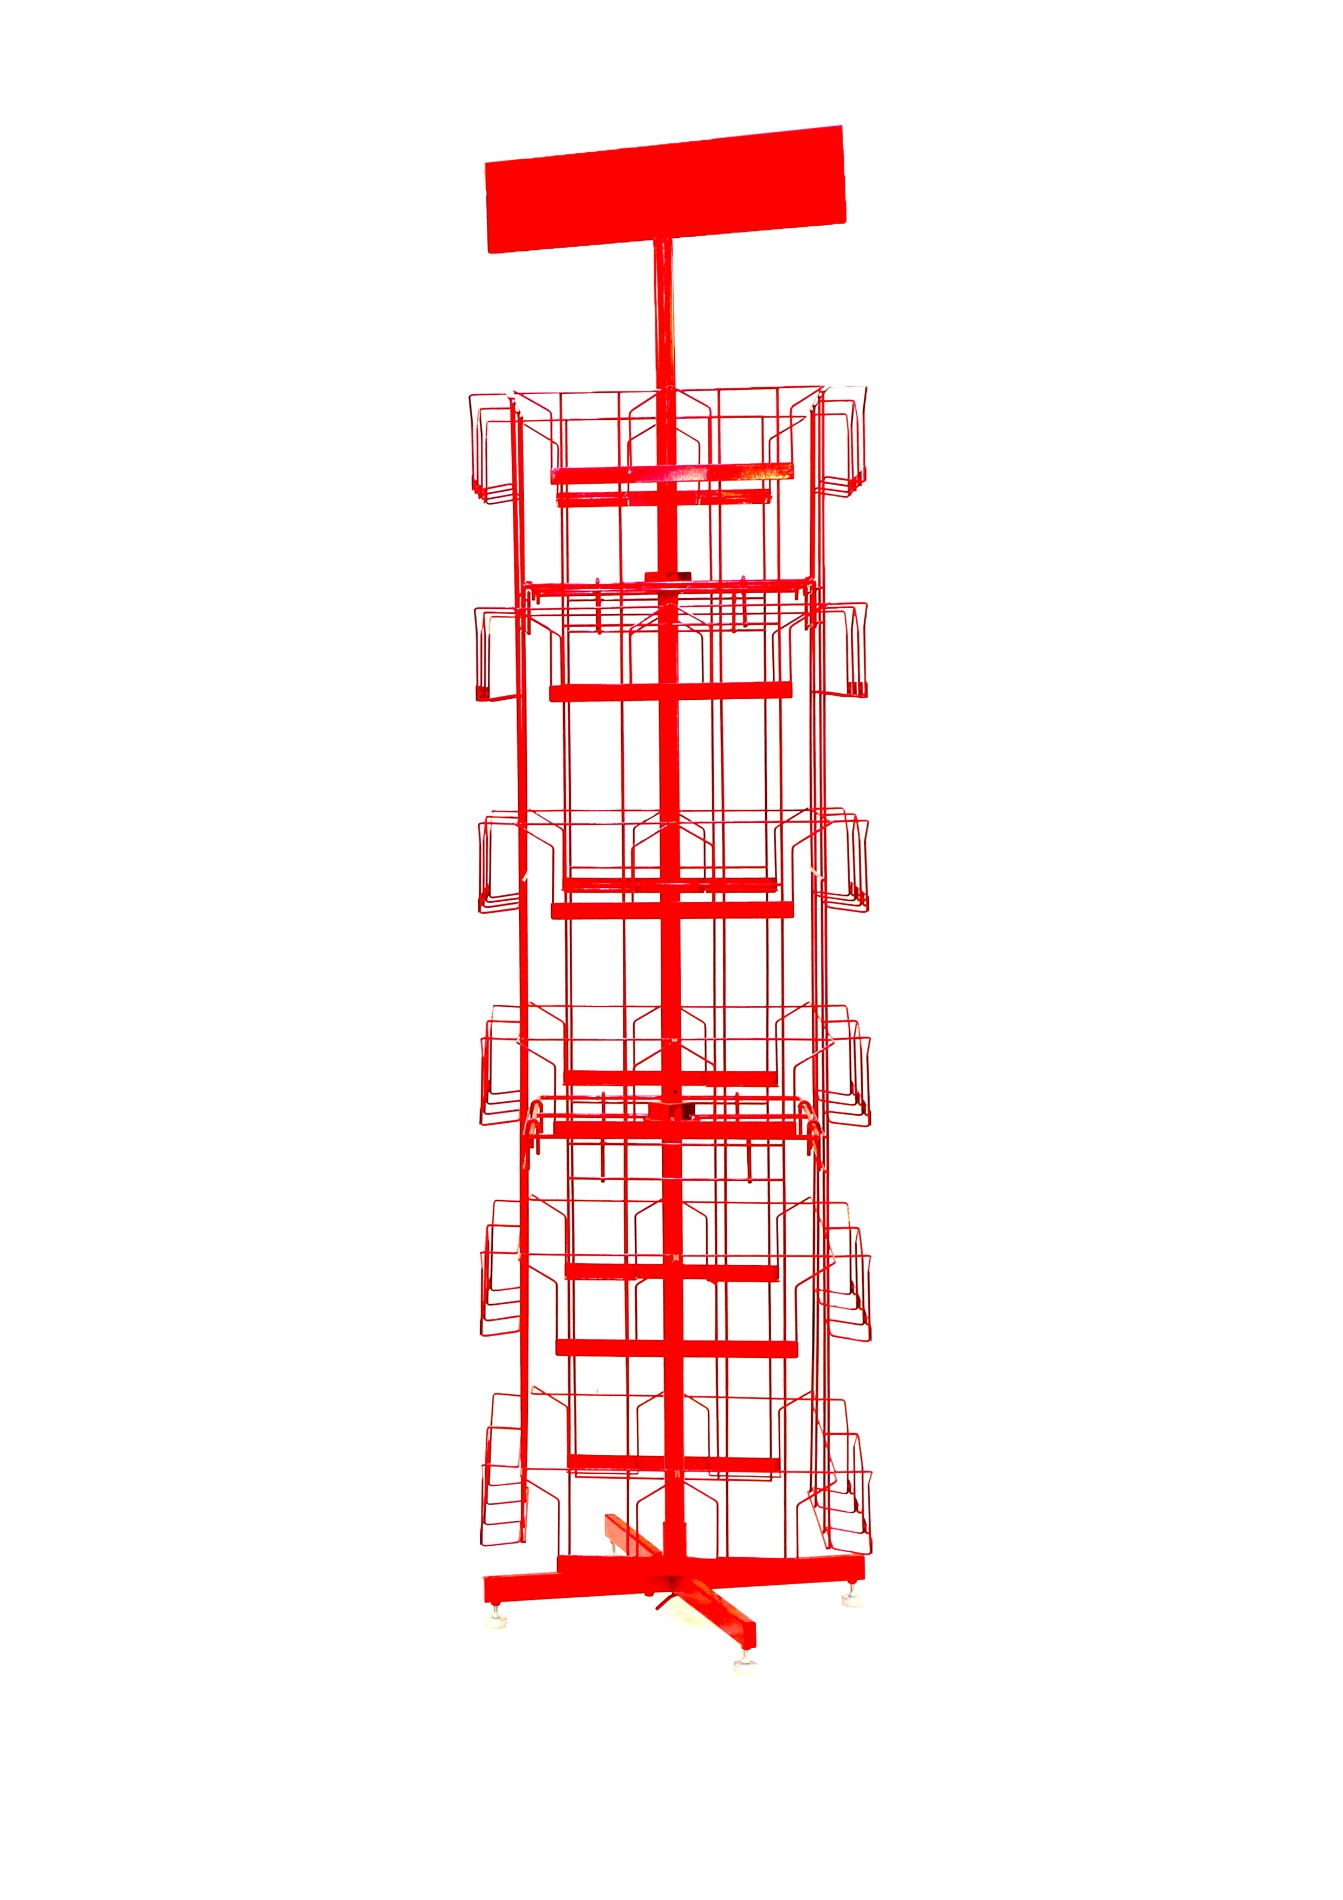 OEM metall store fixture K/D wire stand magzine and brochure rack Manufacturers, OEM metall store fixture K/D wire stand magzine and brochure rack Factory, Supply OEM metall store fixture K/D wire stand magzine and brochure rack